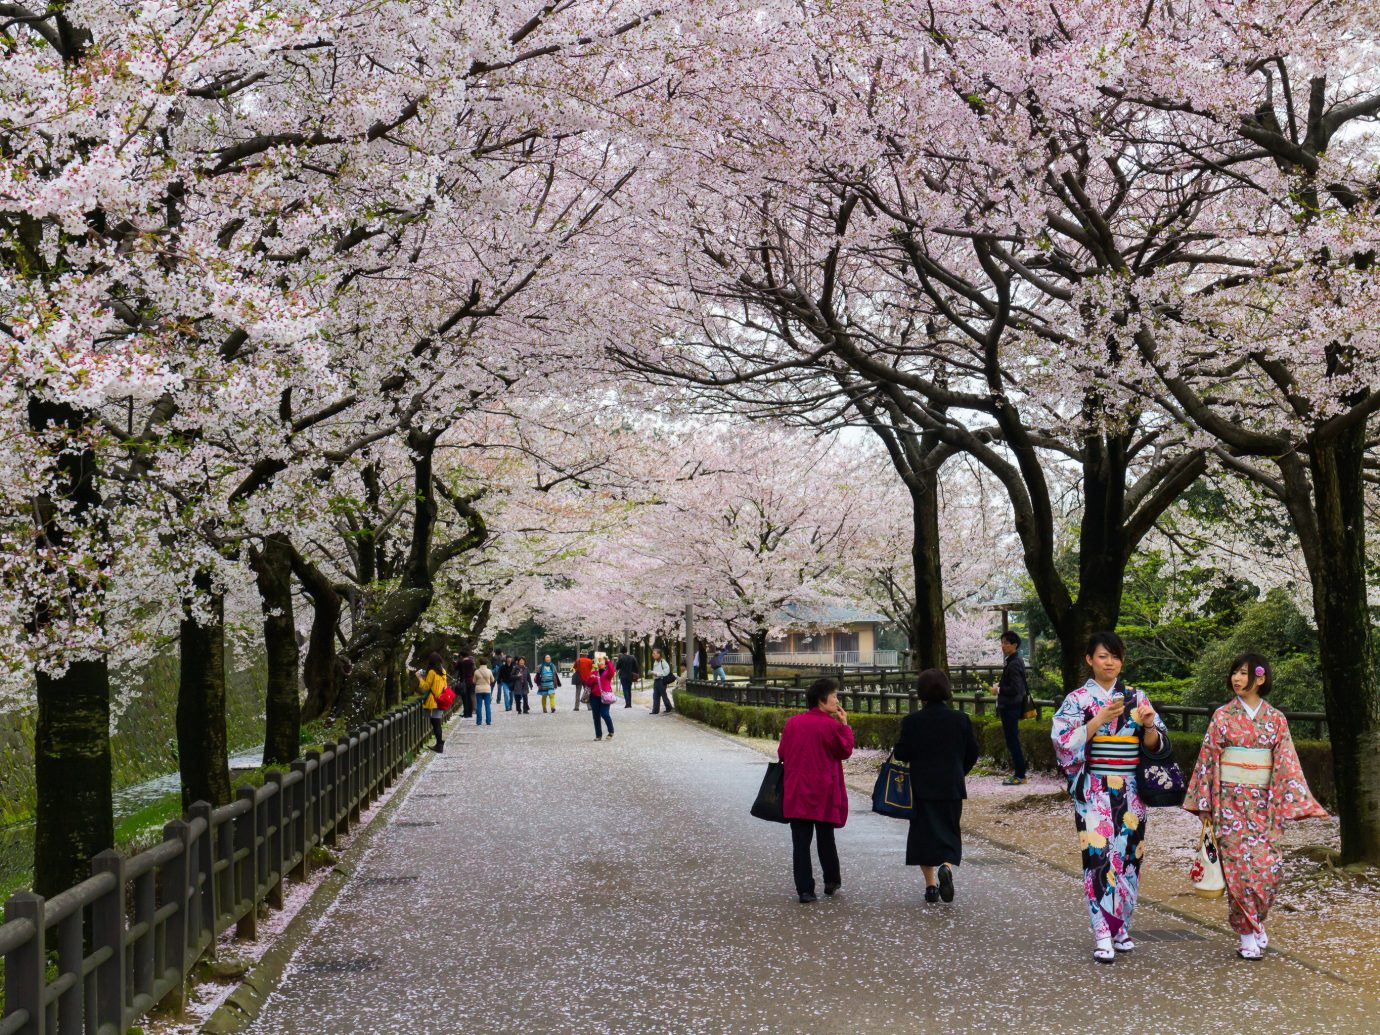 Japan Trip Ideas flower plant tree woody plant cherry blossom blossom spring recreation leisure walking tourism Winter City branch trail autumn park sky